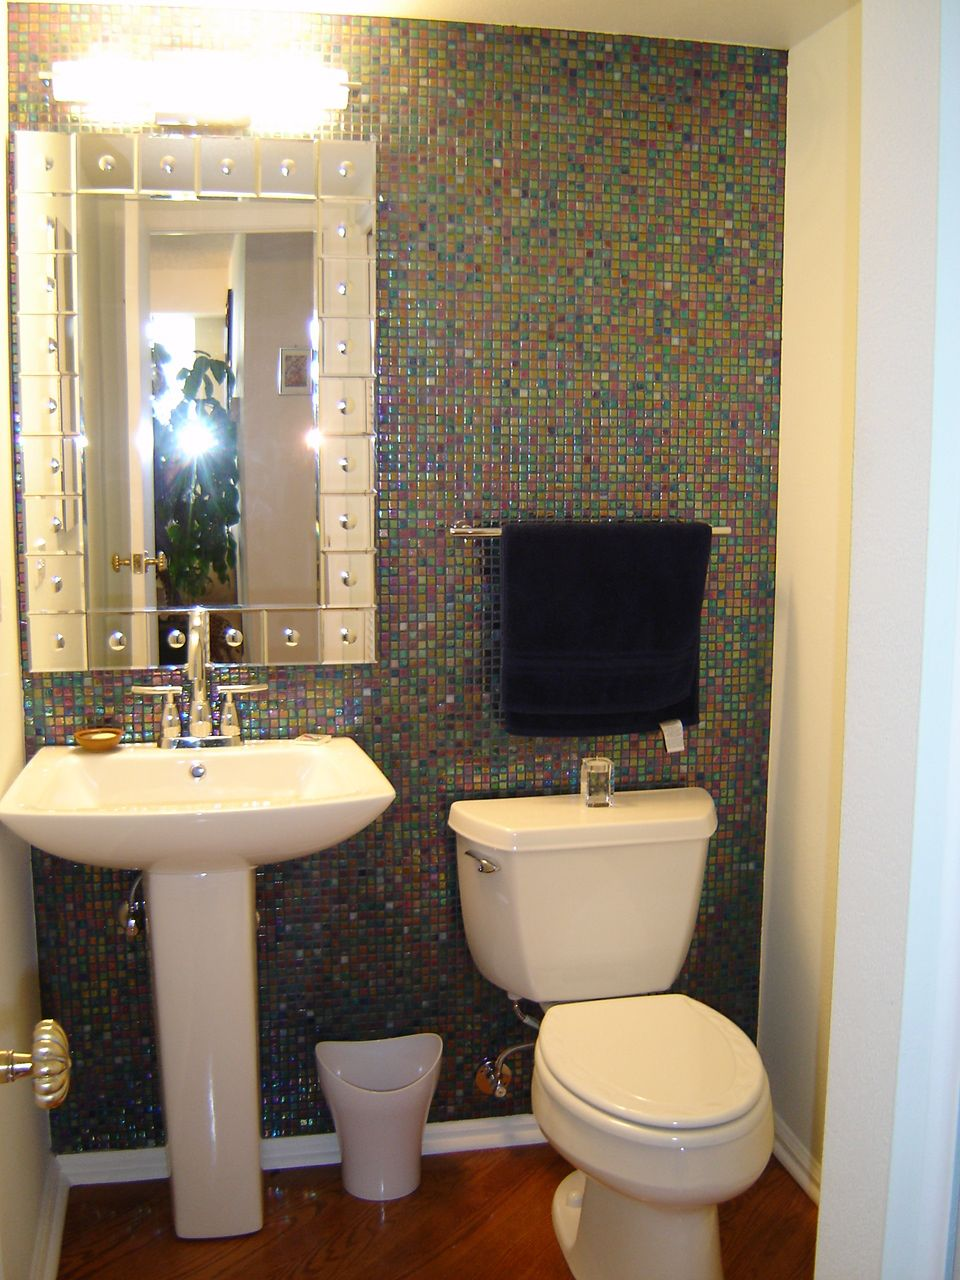 Small Powder Room With Large Mirror And Sconces On The Side - Small powder room designs